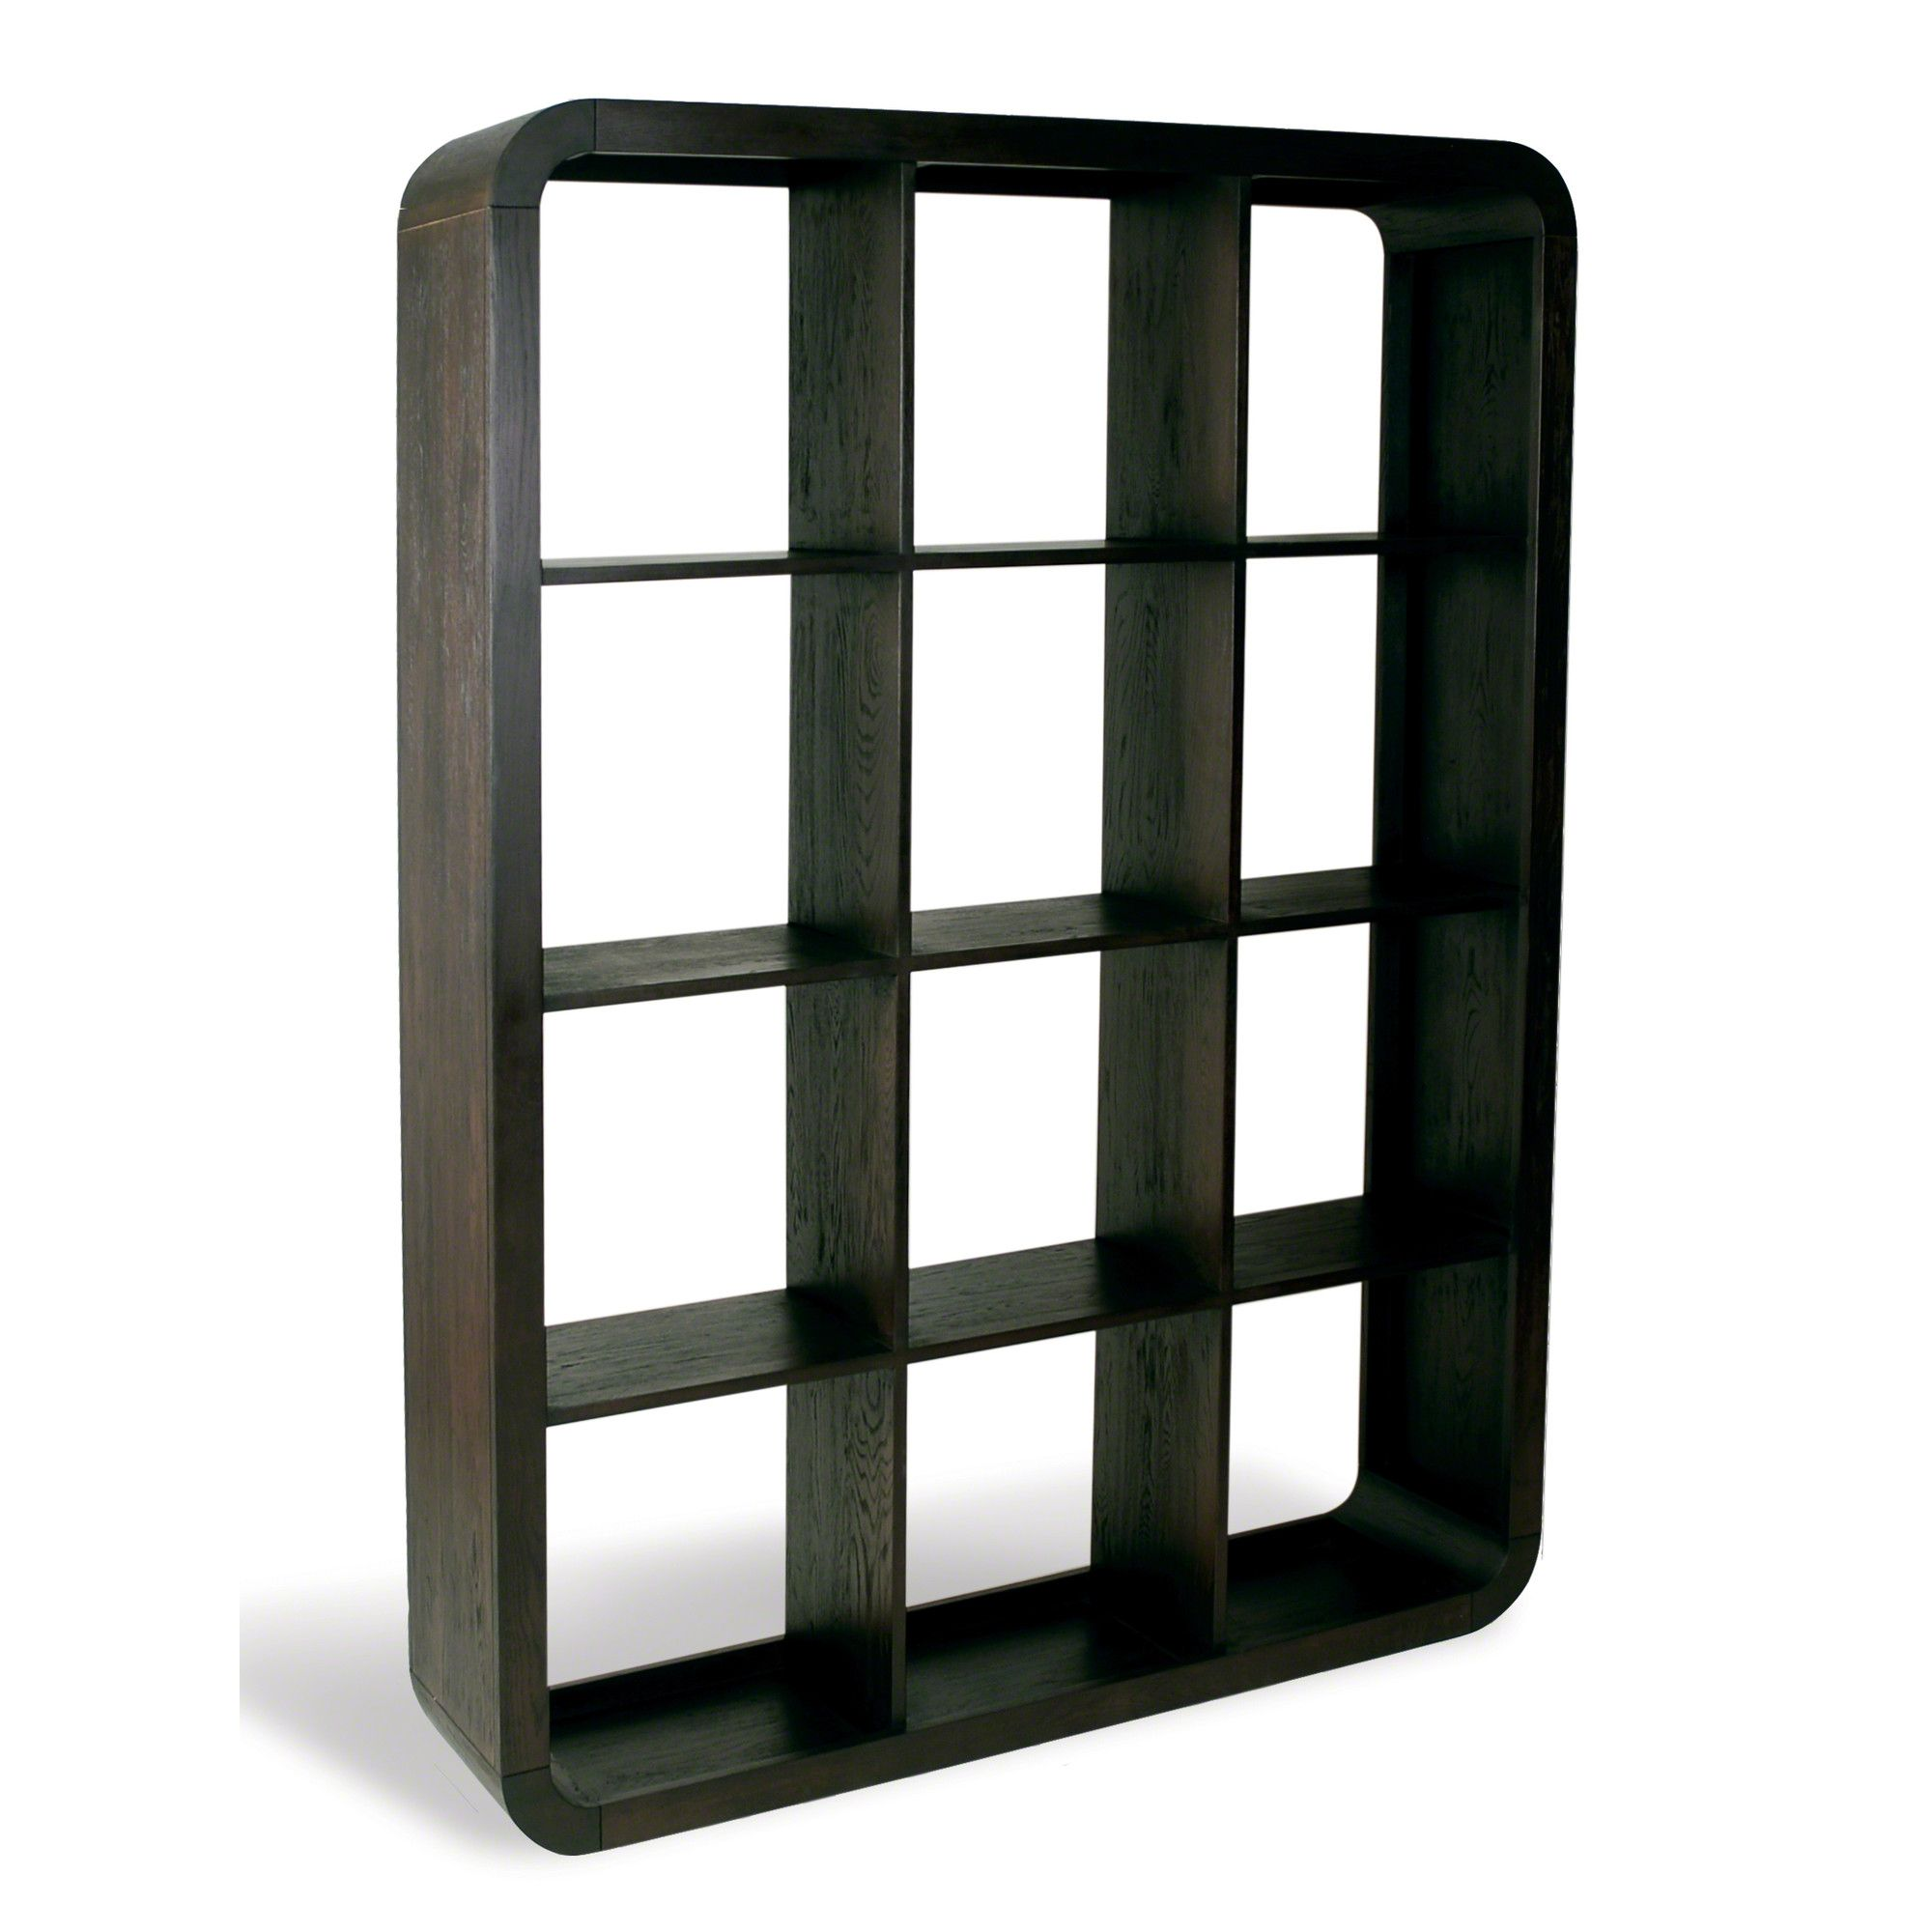 Oceans Apart Cadence Dark Oak Living 12 Hole Shelf Unit at Tesco Direct